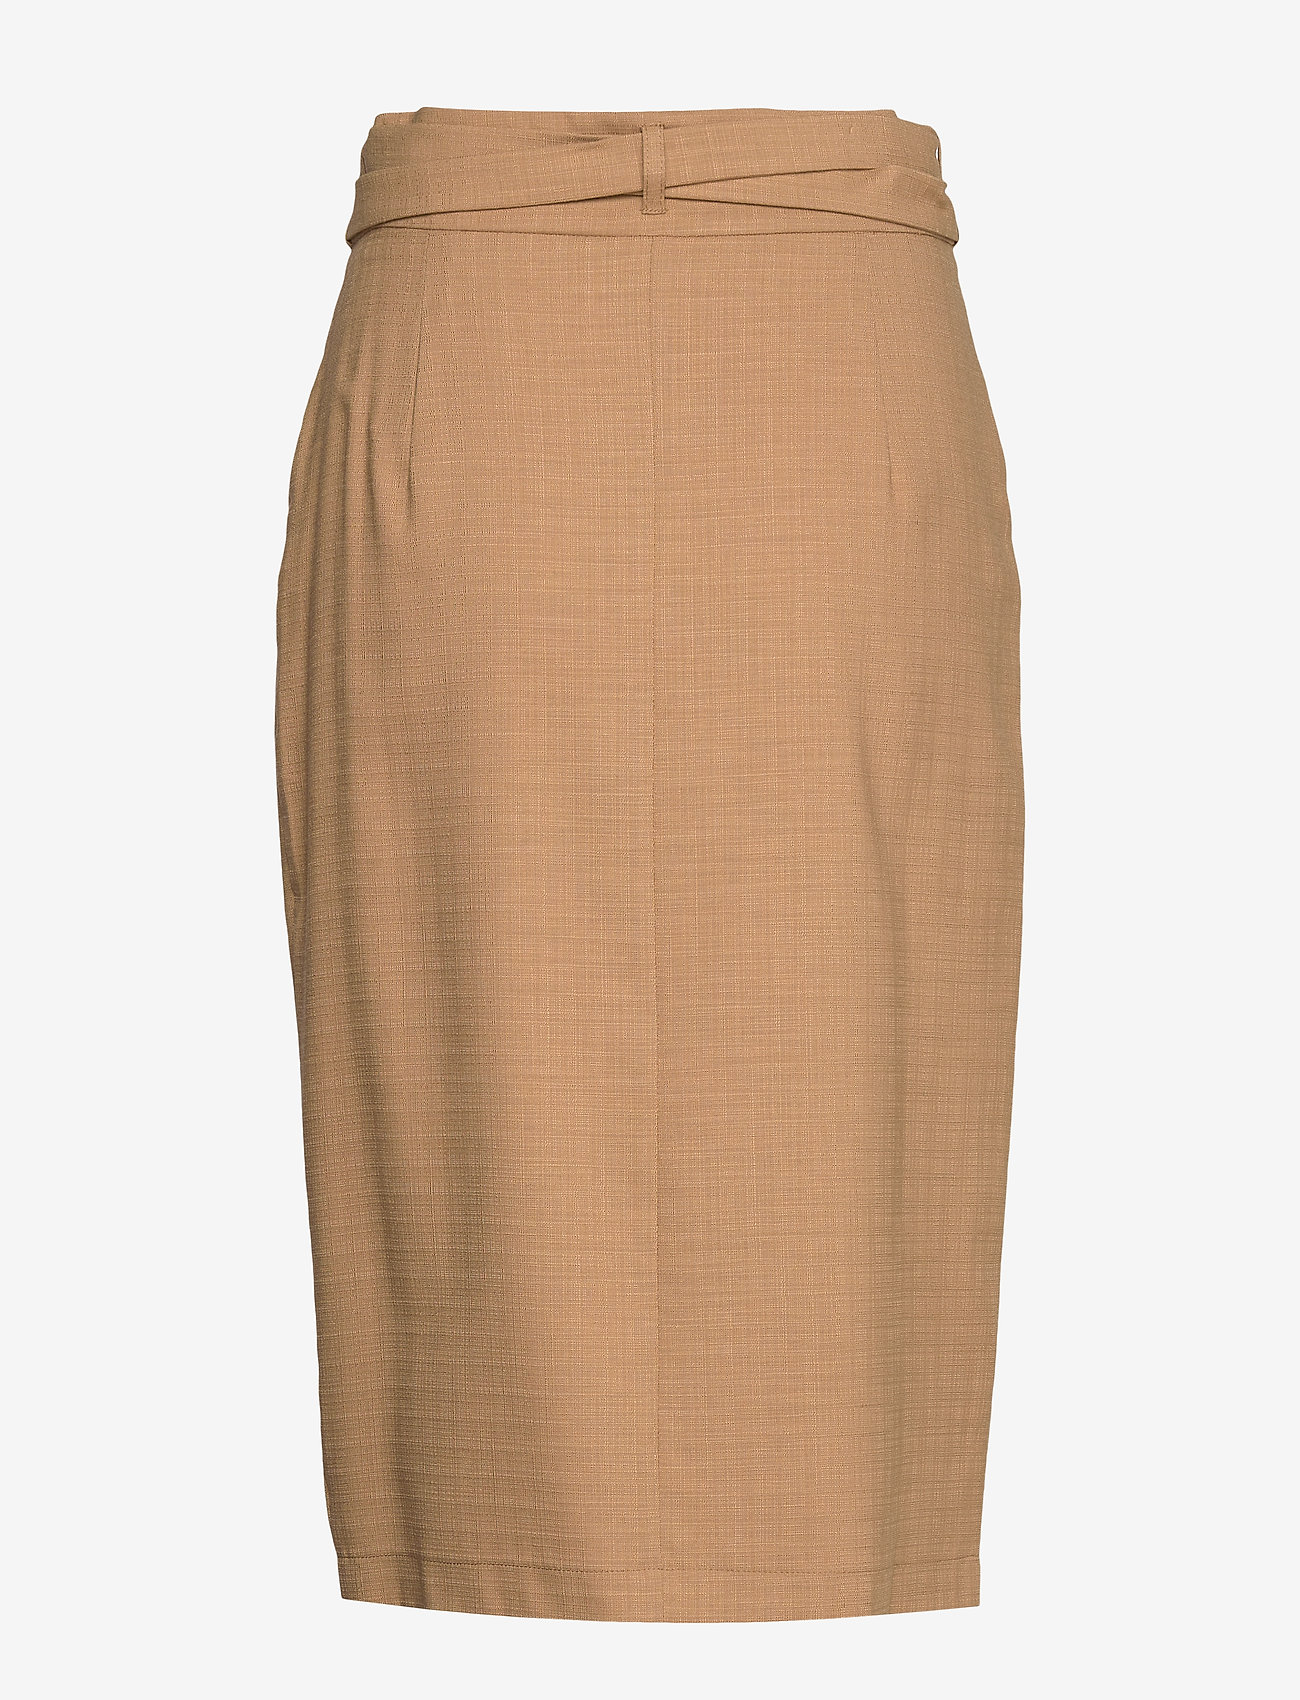 6253 - Aran Skirt (Light Camel) (174.30 €) - SAND 6iTtr3tJ